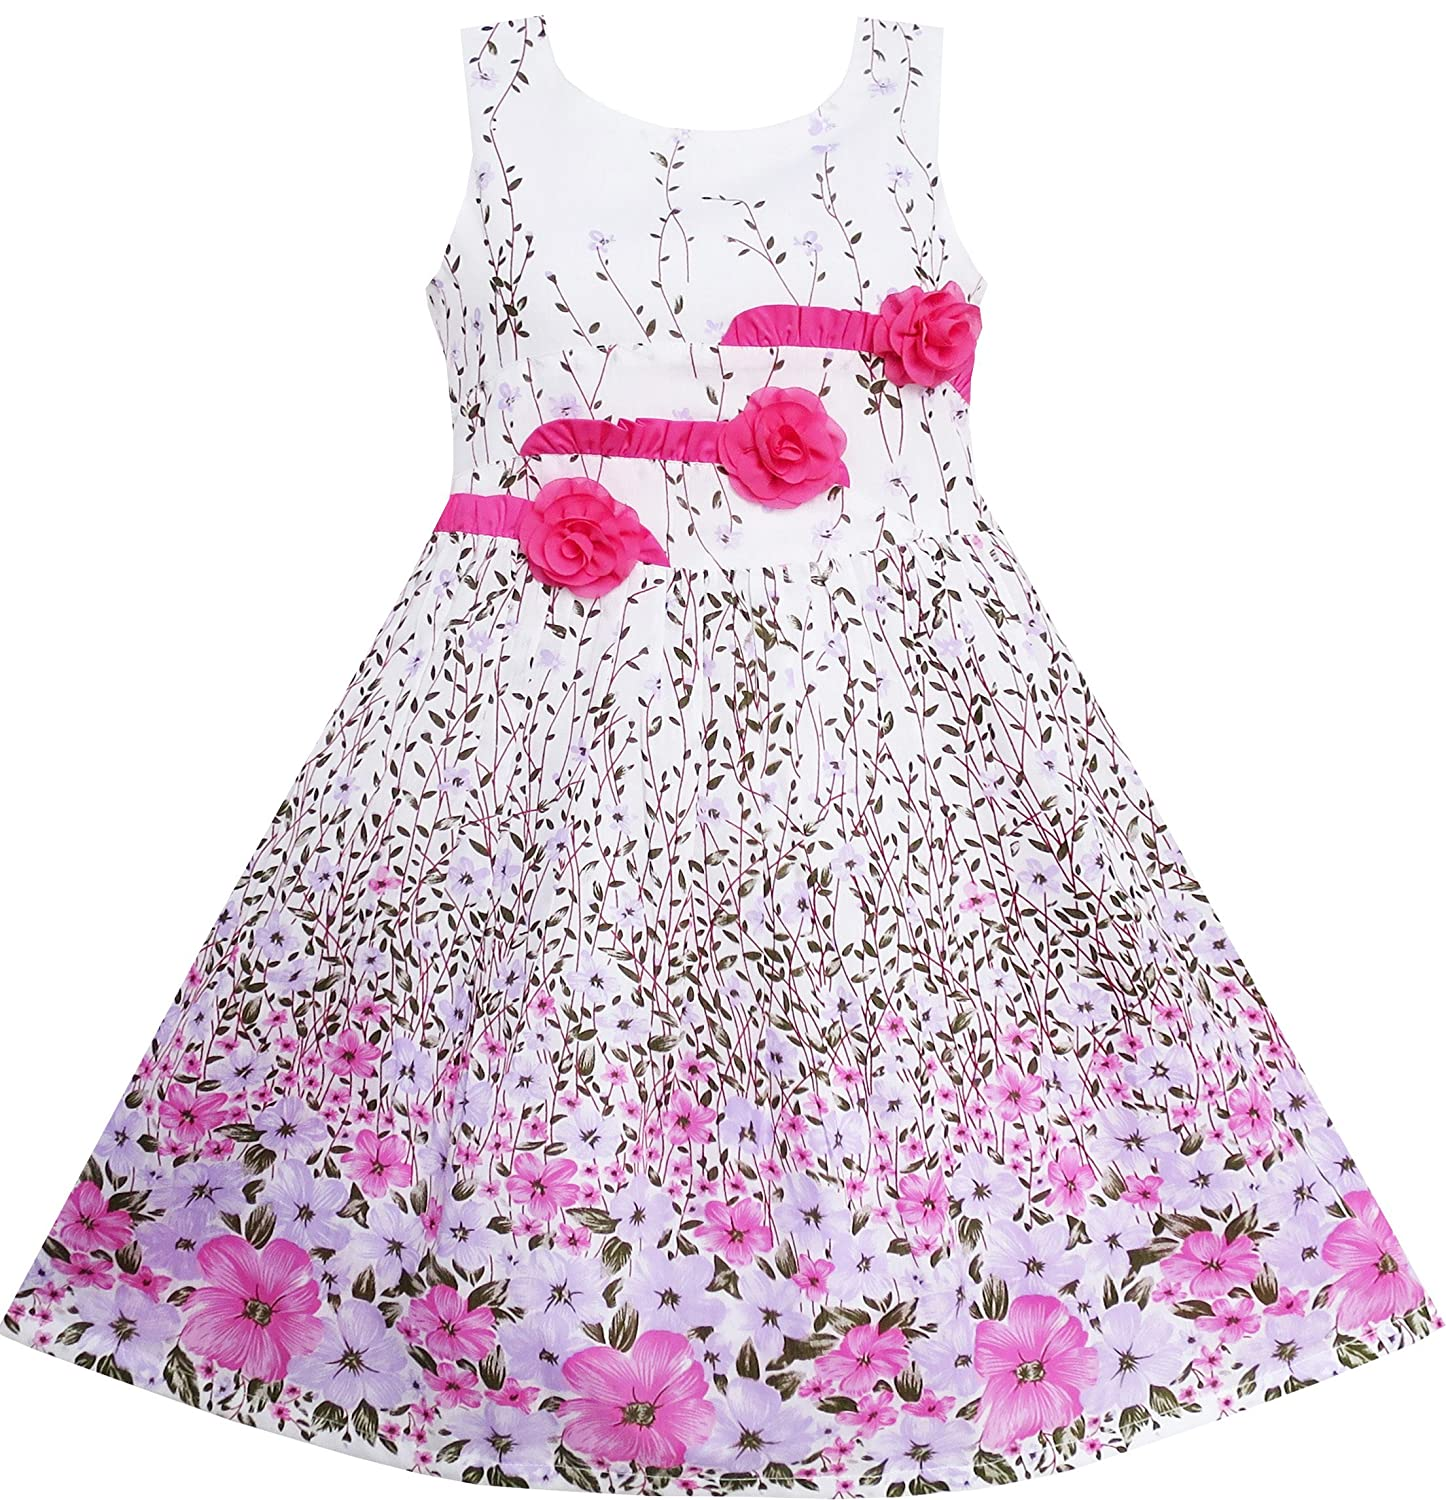 Sunny Fashion Girls Dress 3 Pink Flower Leaves School Party